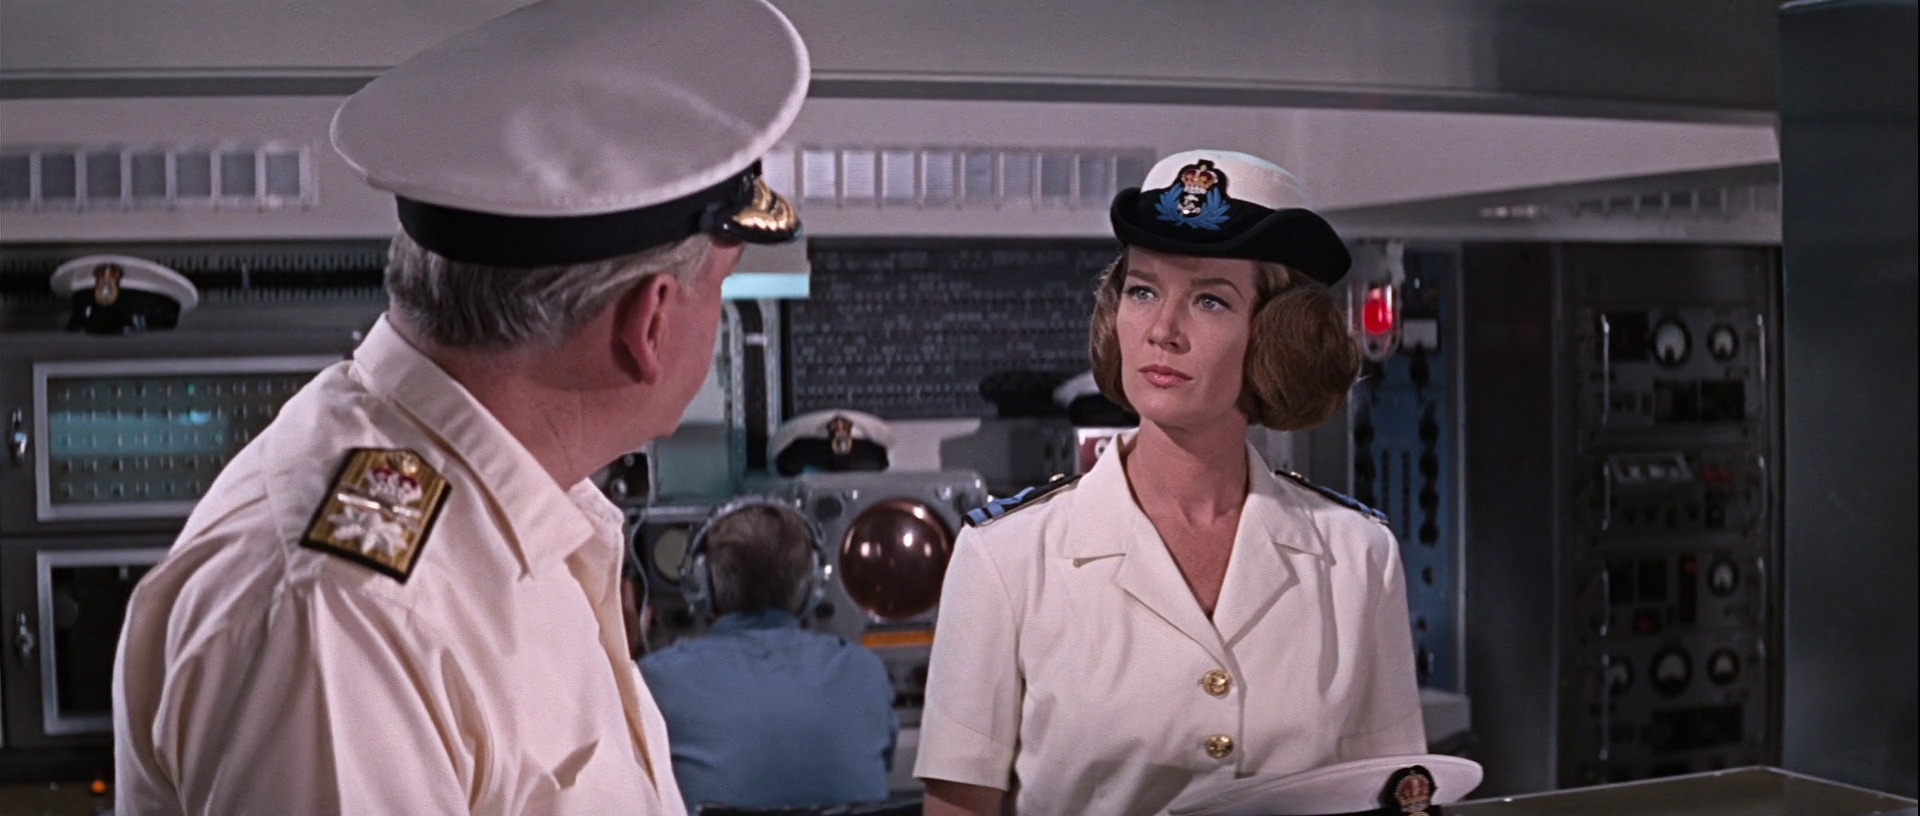 Lois Maxwell in You Only Live Twice, Miss Moneypenny in You Only Live Twice